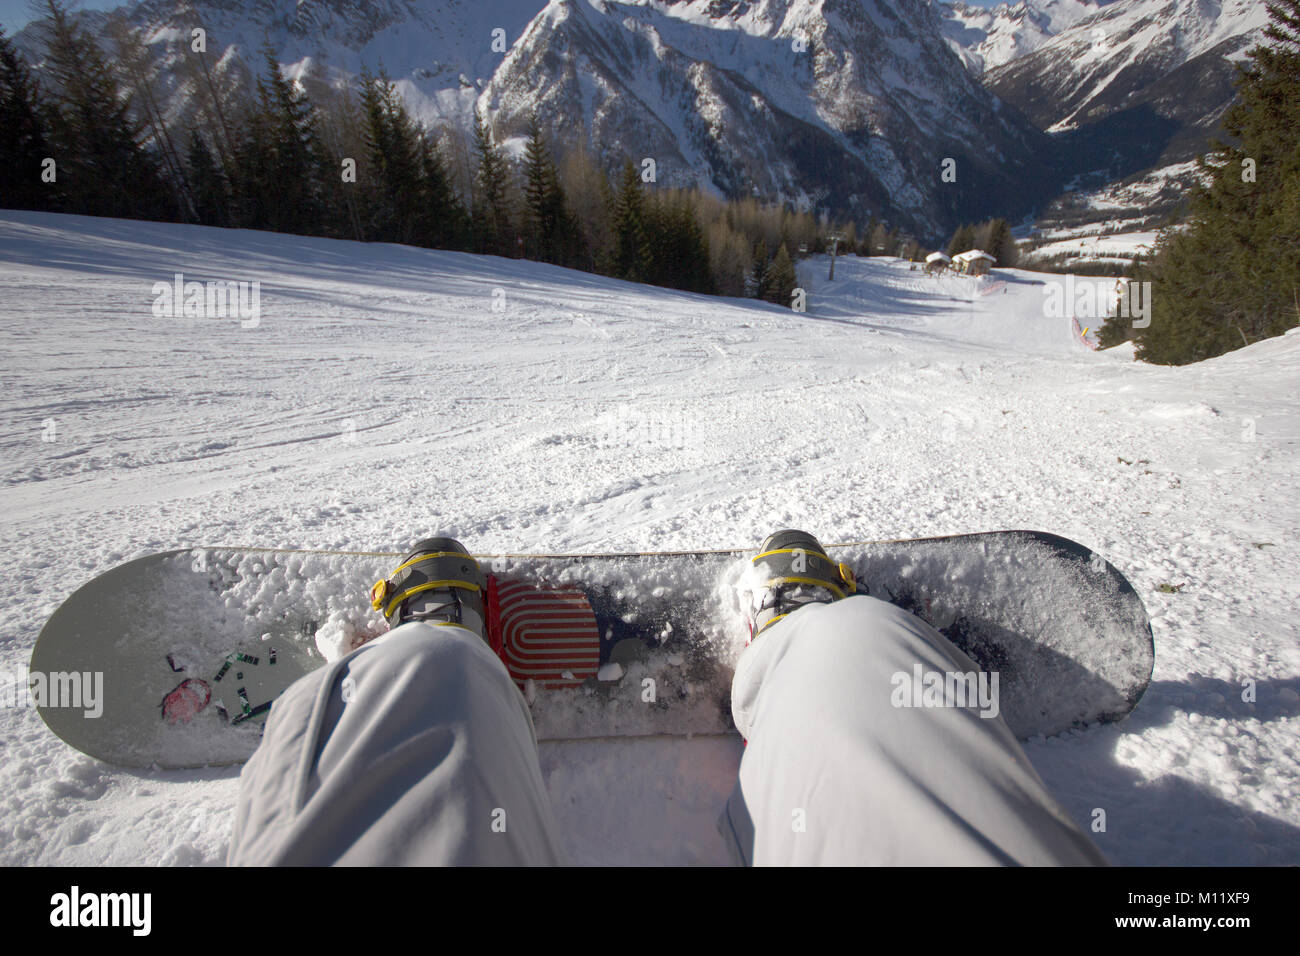 a view of the piste with snowboard in the foreground in the Italian Alps - Stock Image